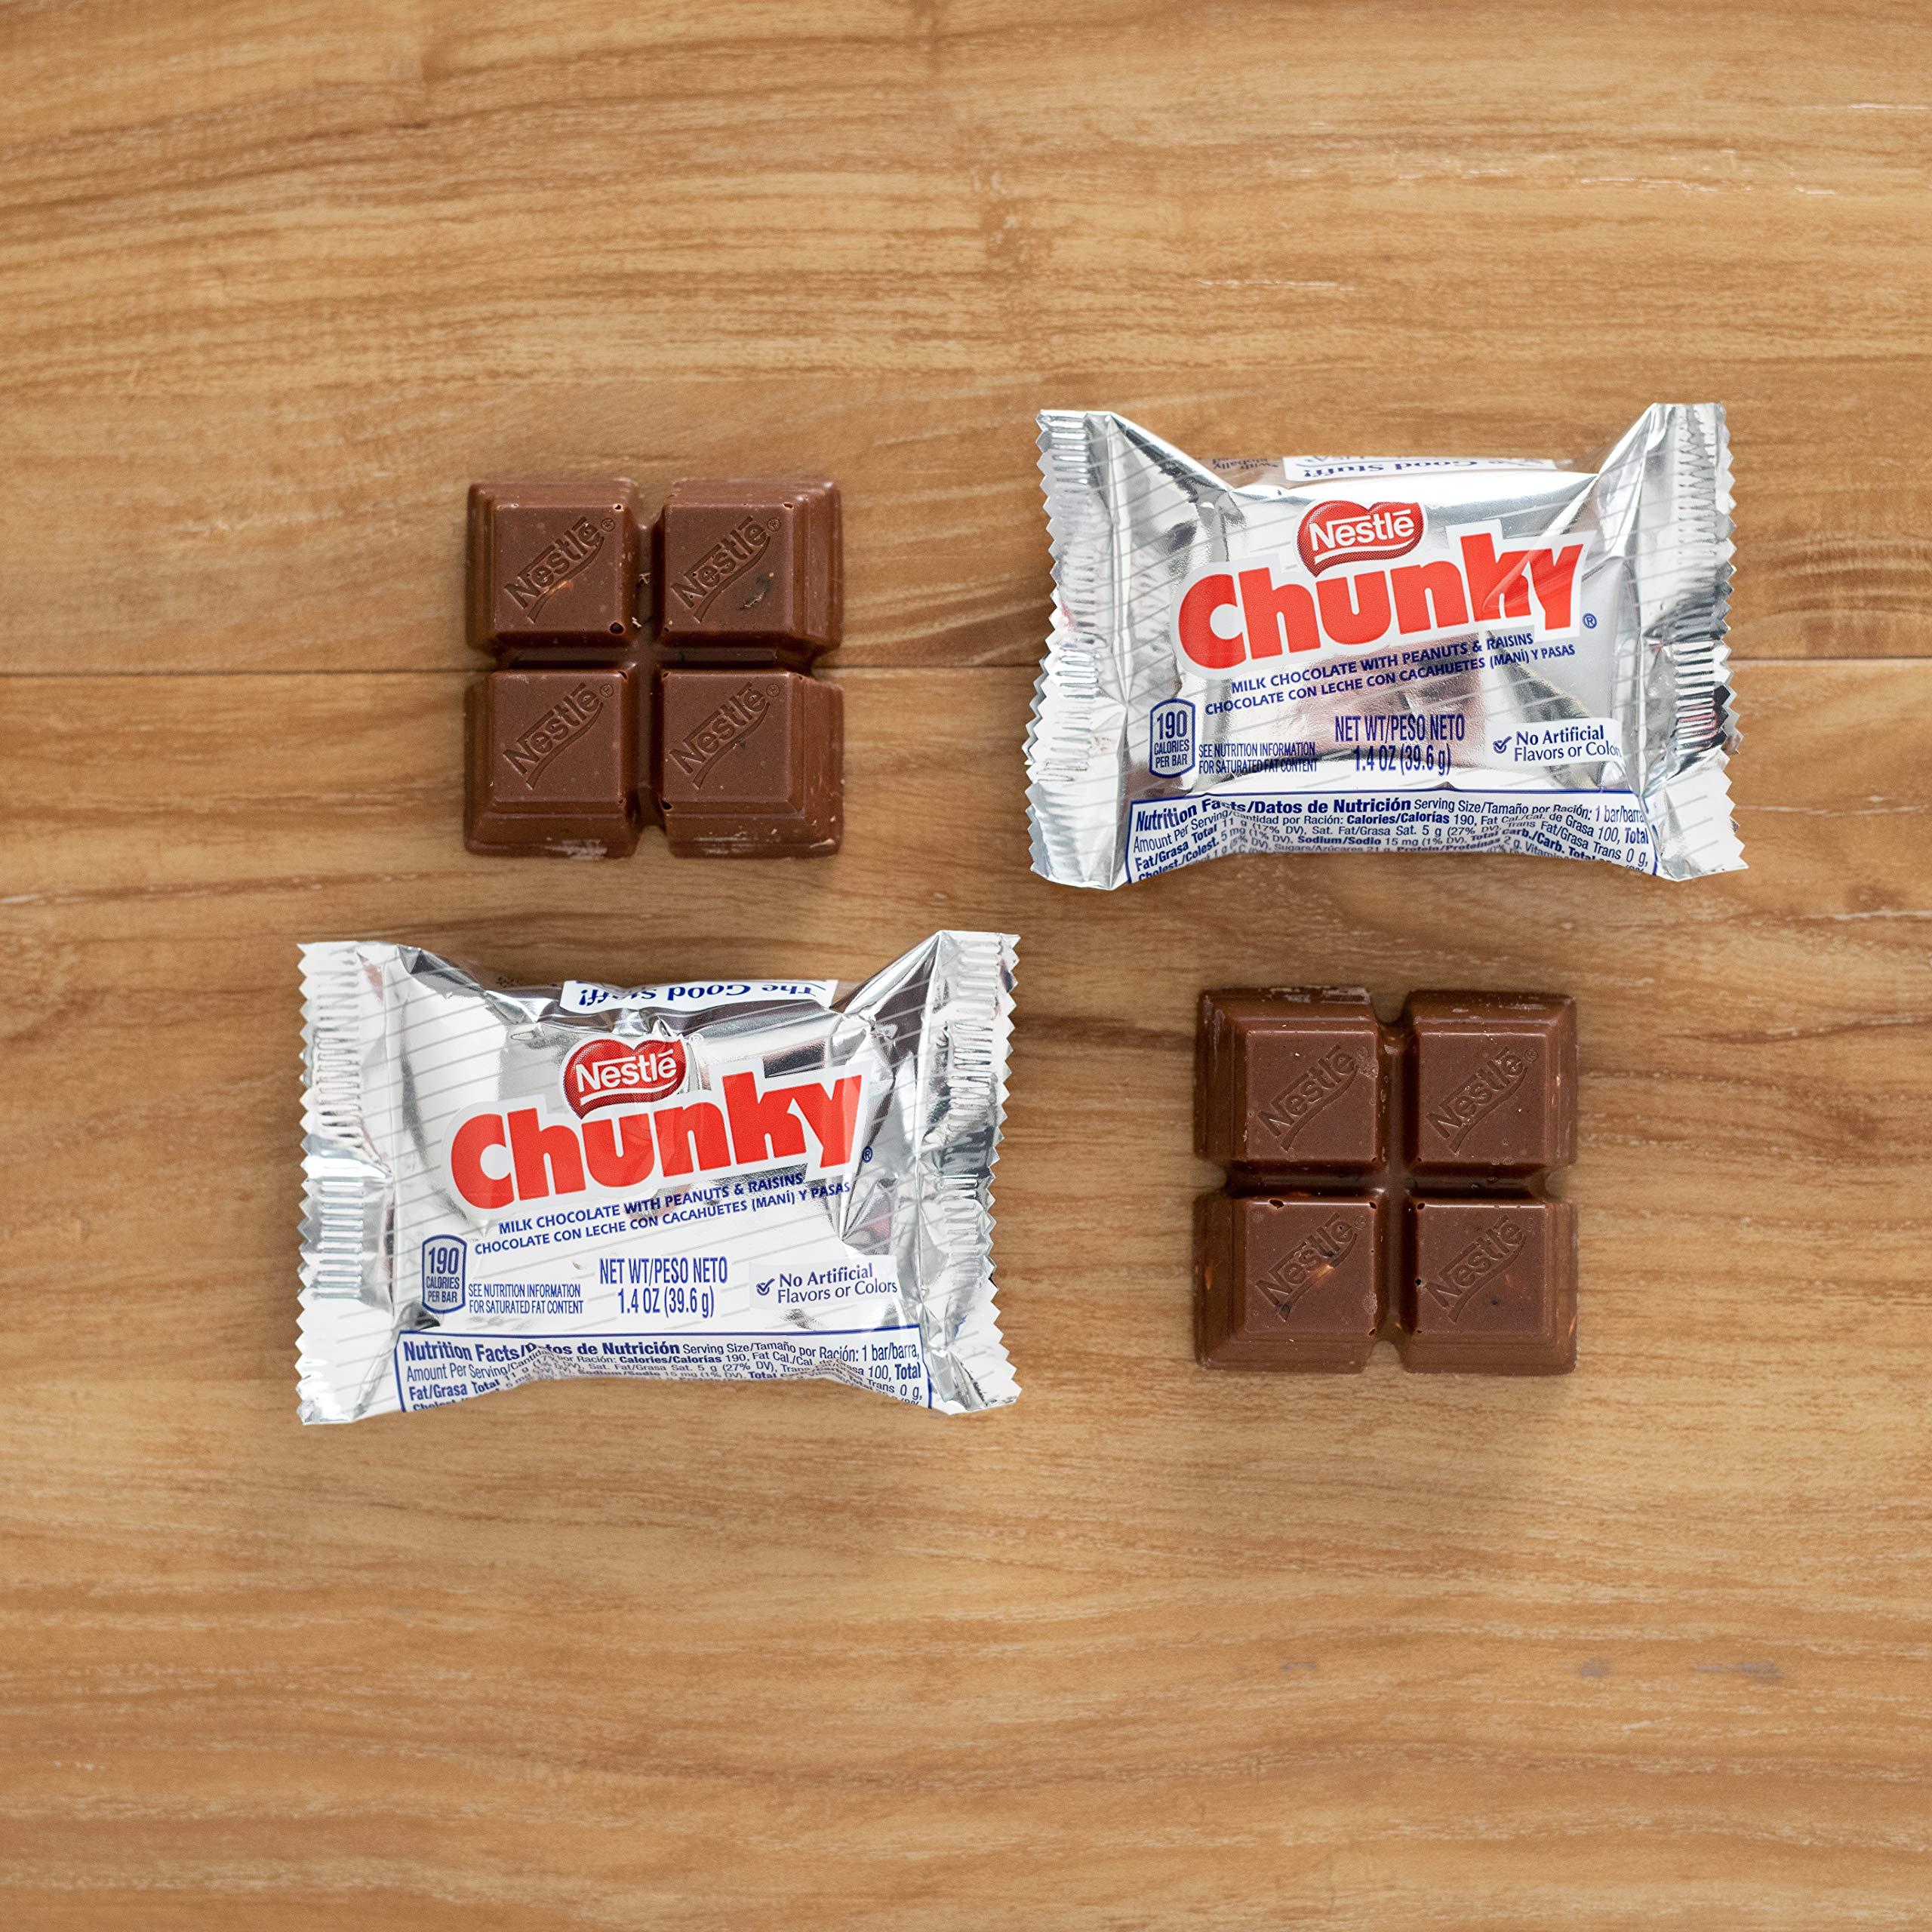 Nestle Chunky Chocolate Single Candy Bars, 1.4 Ounce (Pack of 24) by Chunky (Image #10)